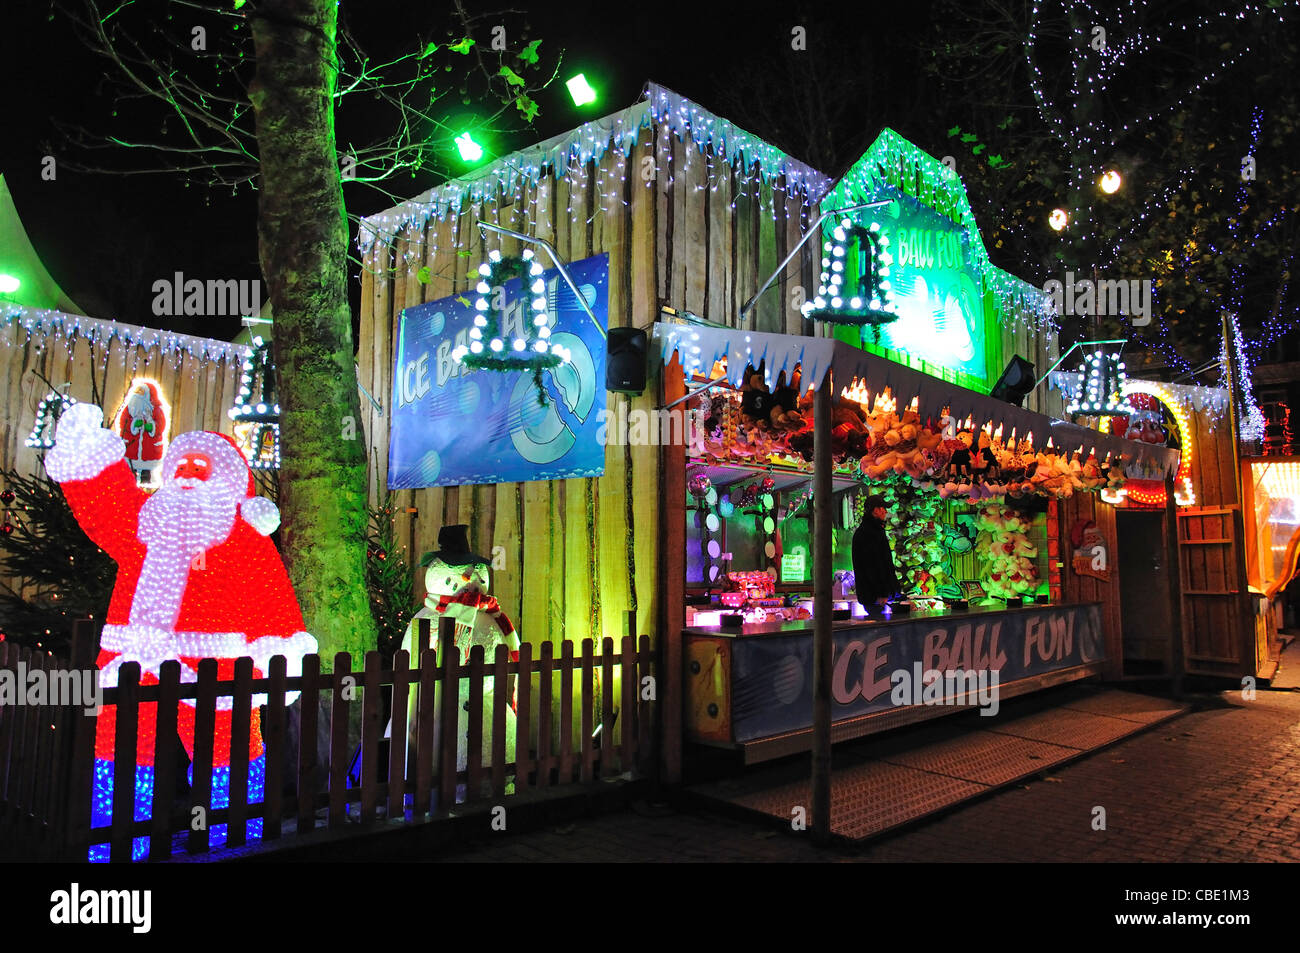 Crystal LED Father Christmas and stall at Christmas market, Rembrandtplein, Amsterdam, Noord-Holland, Kingdom of - Stock Image